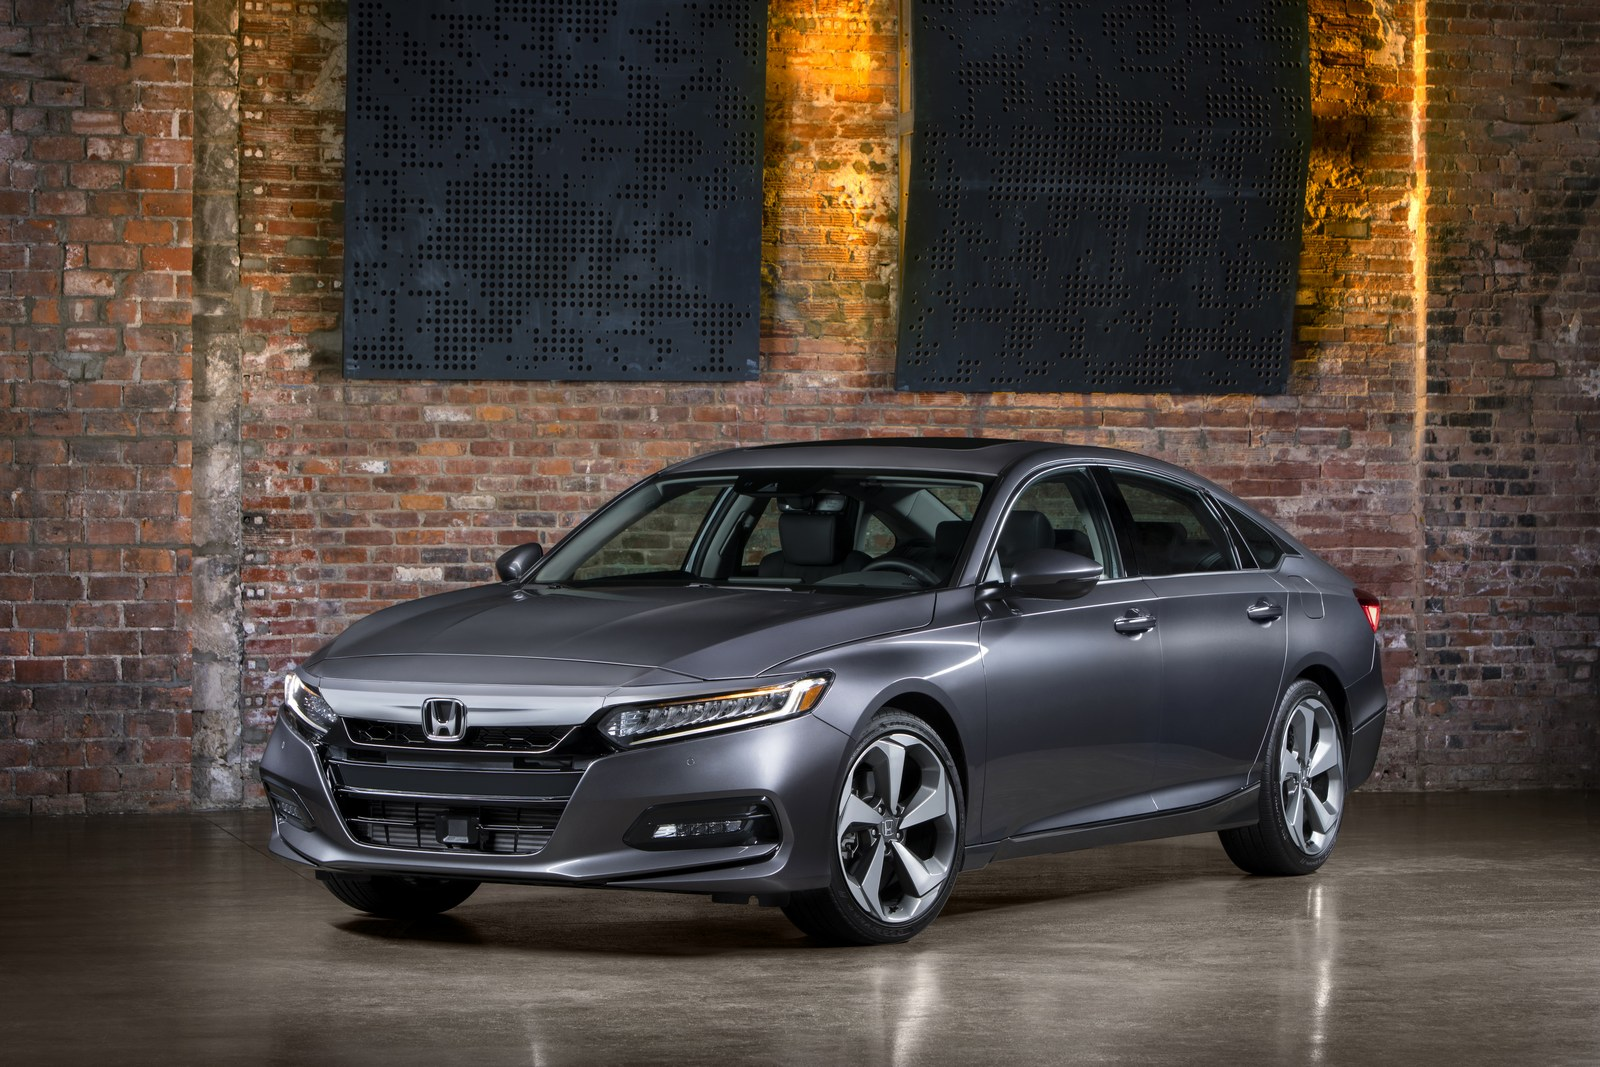 2018 Honda Accord Production To Be Put On Idle Over Slow Sales